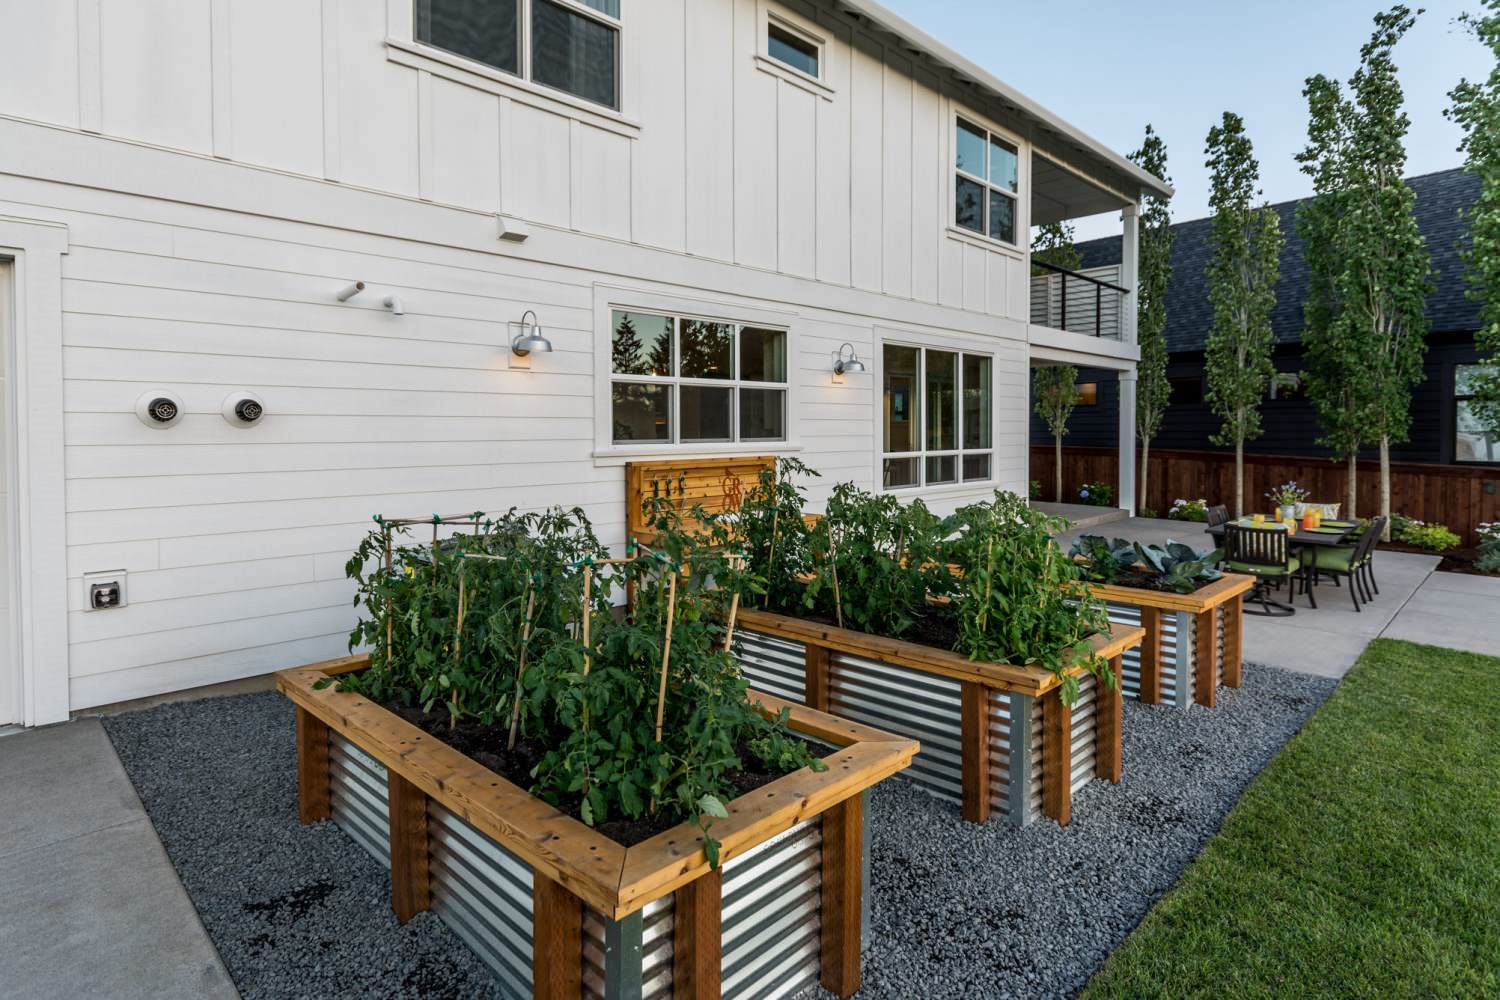 75 Beautiful Farmhouse Landscaping Pictures Ideas December 2020 Houzz